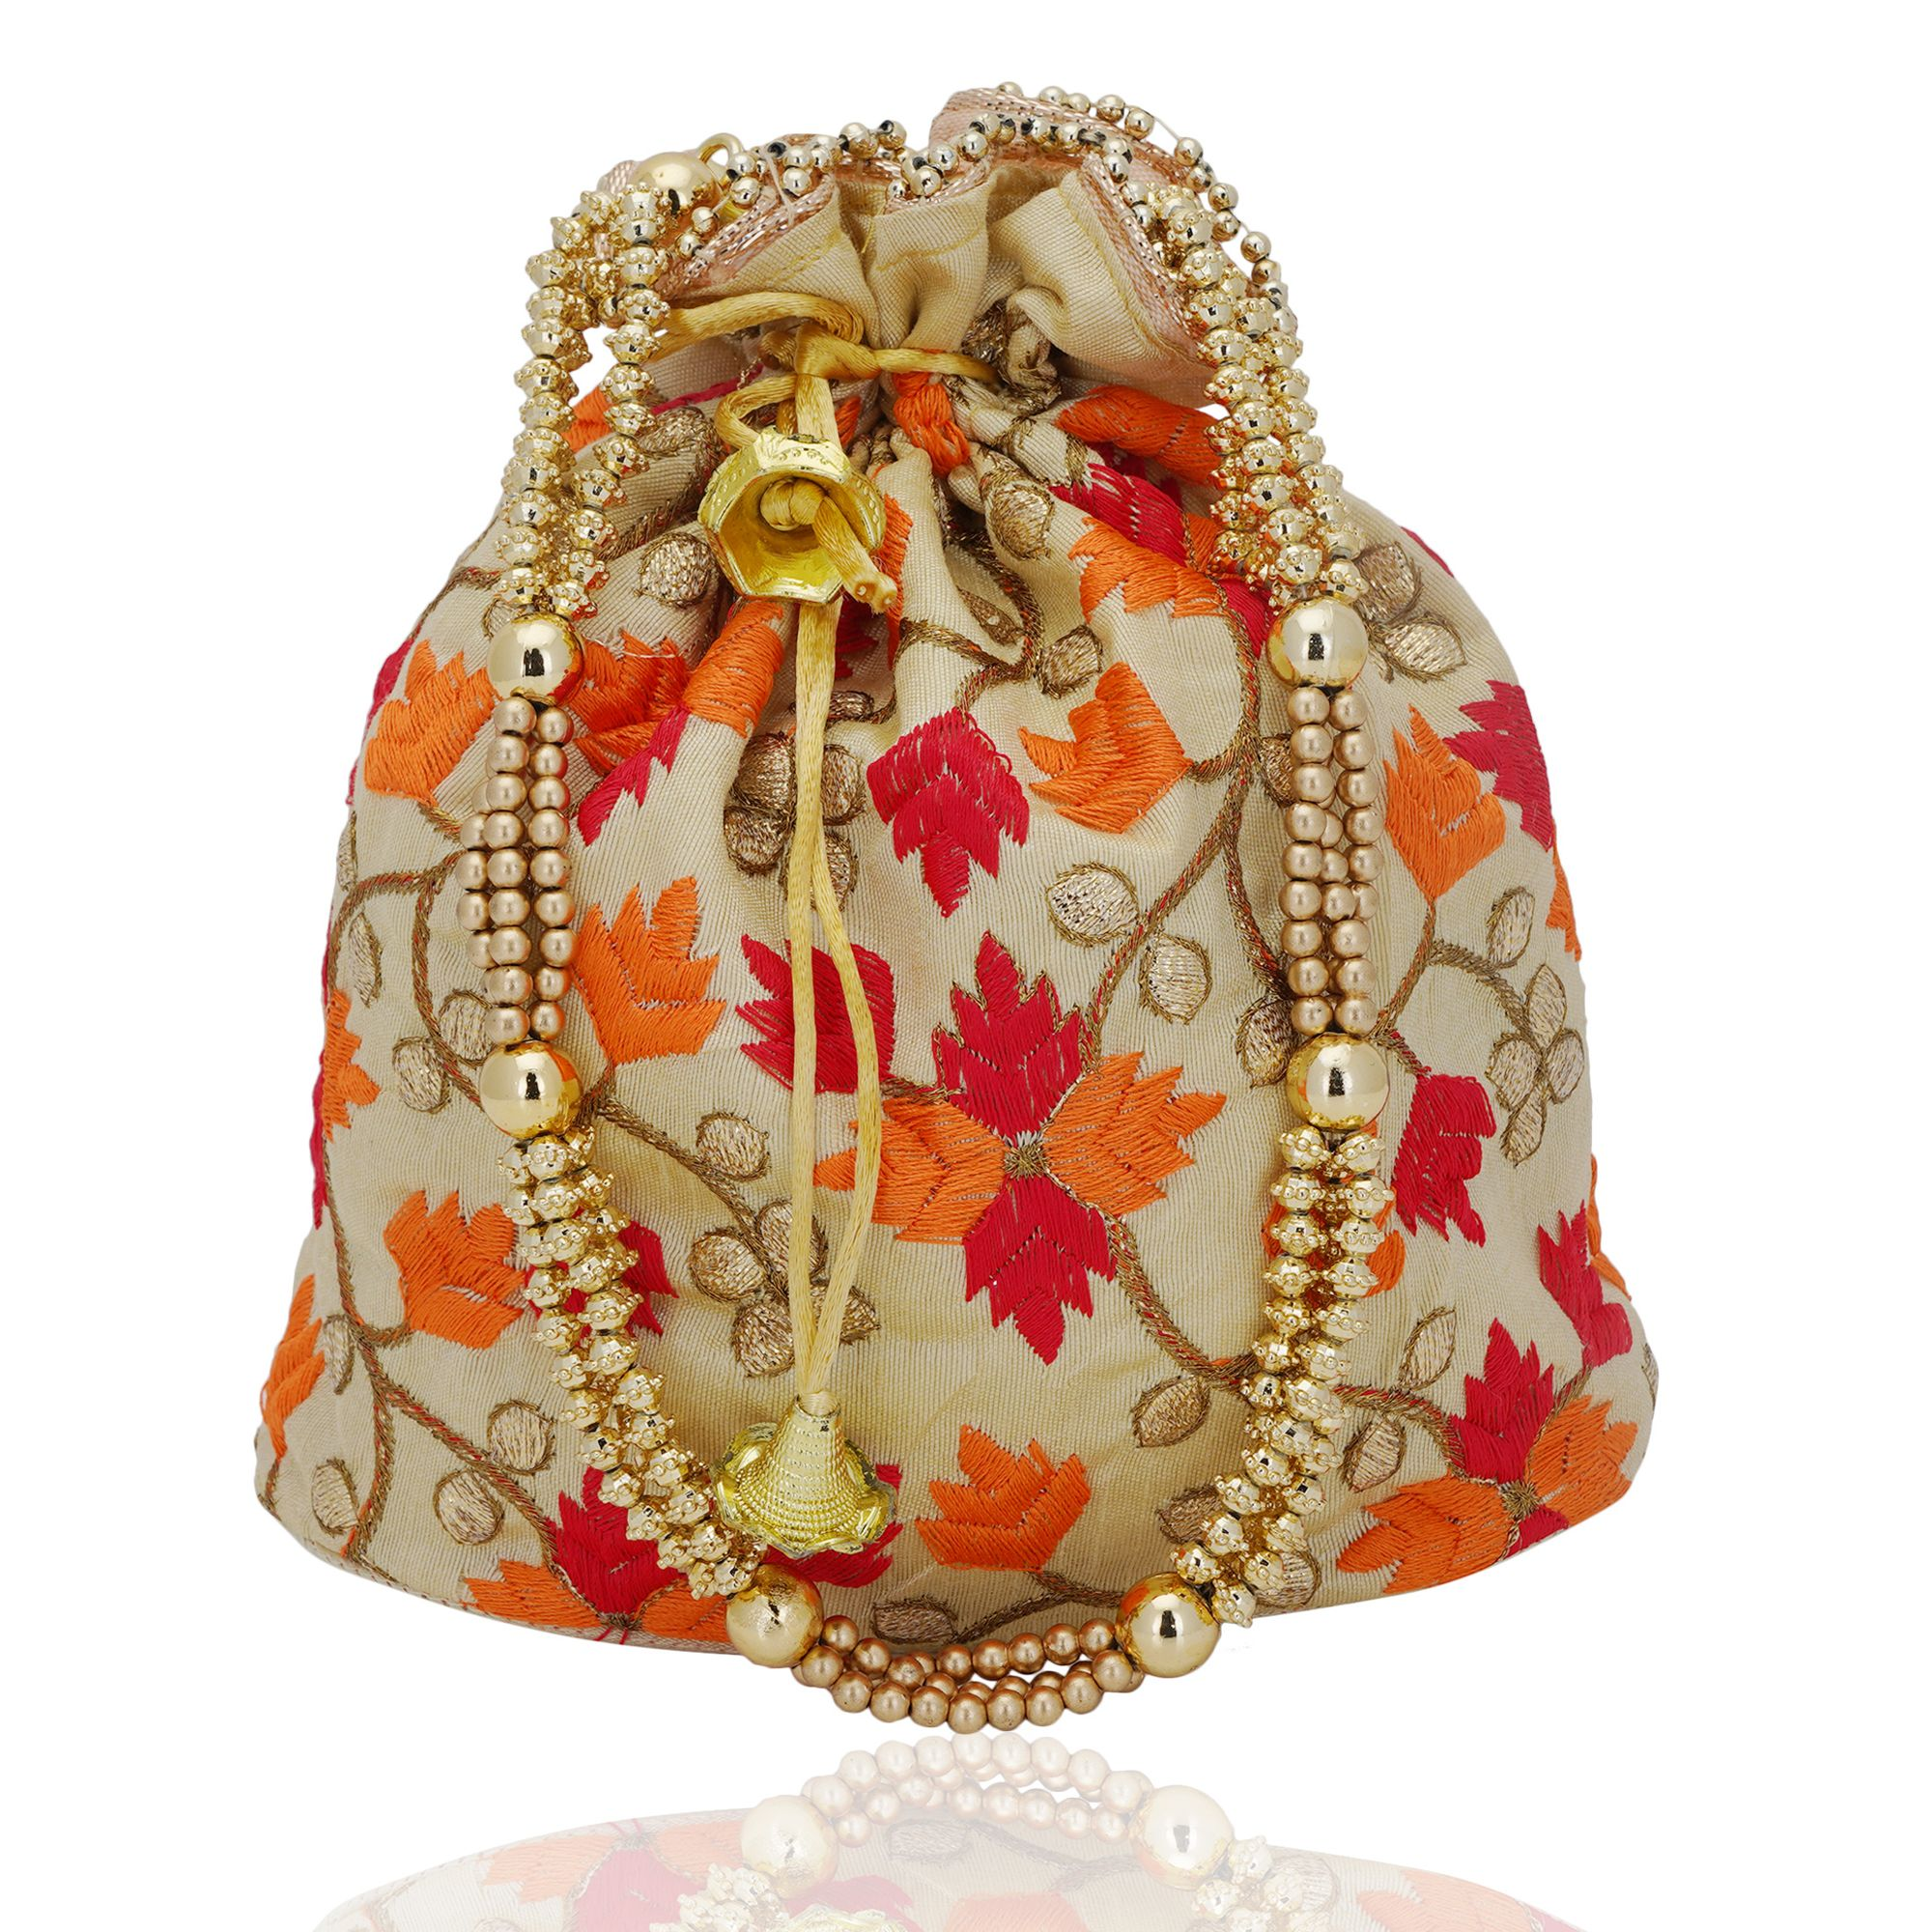 Beige and Multi Dupion Silk Phulkari Resham Work Potli Bag with Beads 1